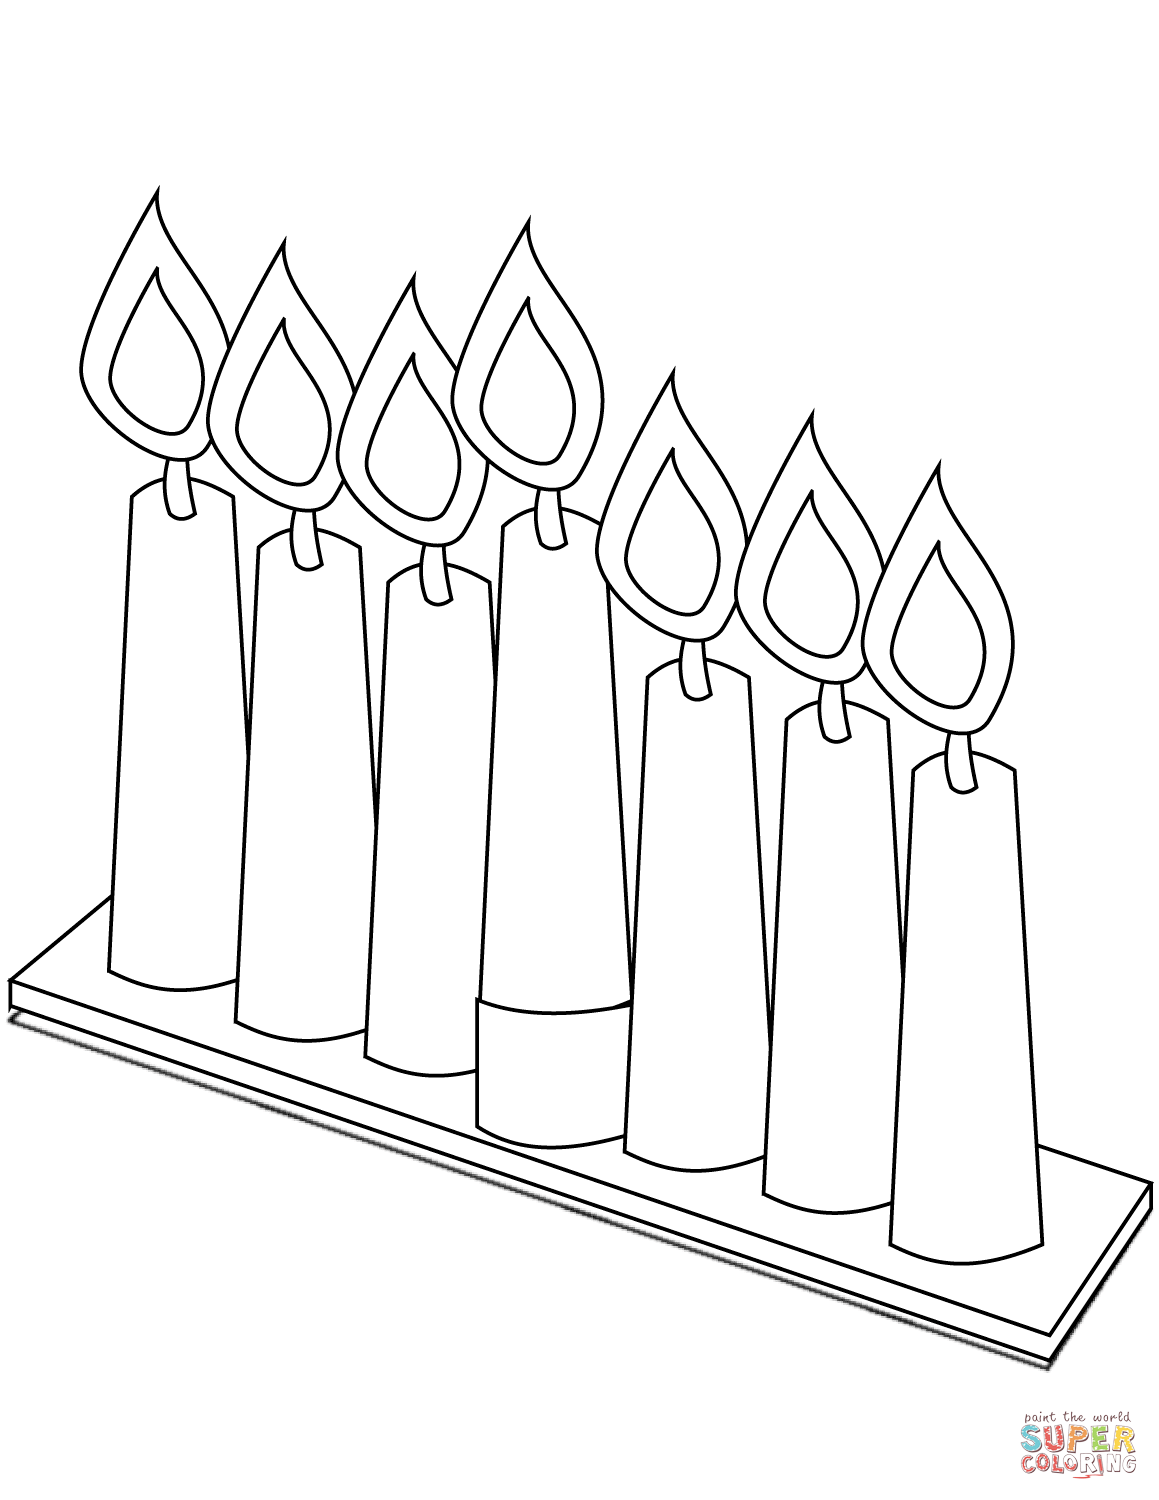 Seven Candles For Kwanzaa Coloring Page Free Printable Coloring